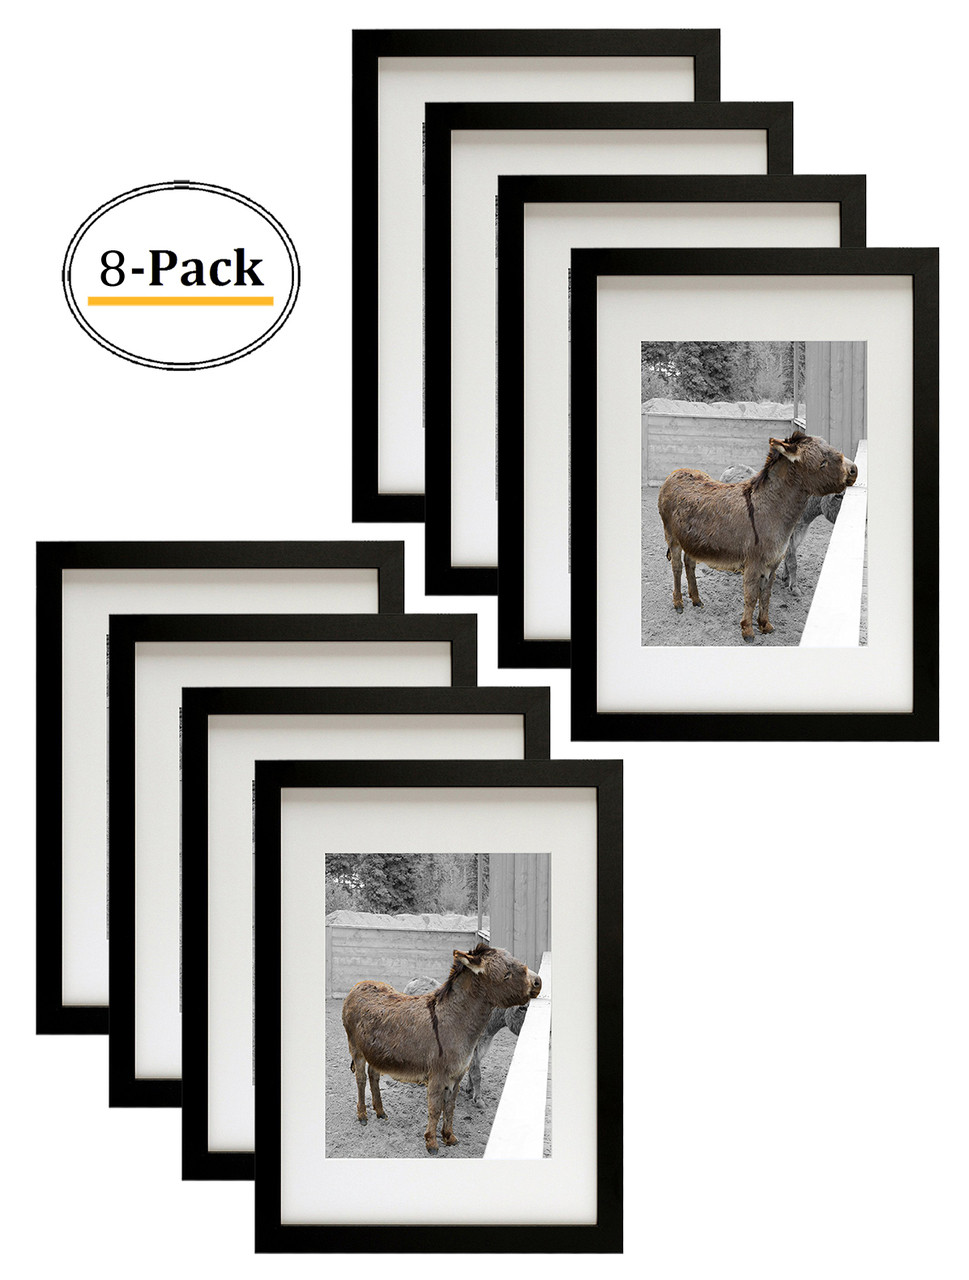 12x16 12x16 Picture Frame Matted To Fit Pictures 8 5x11 Inches Or 12x16 Without Mat Black 8pcs Box